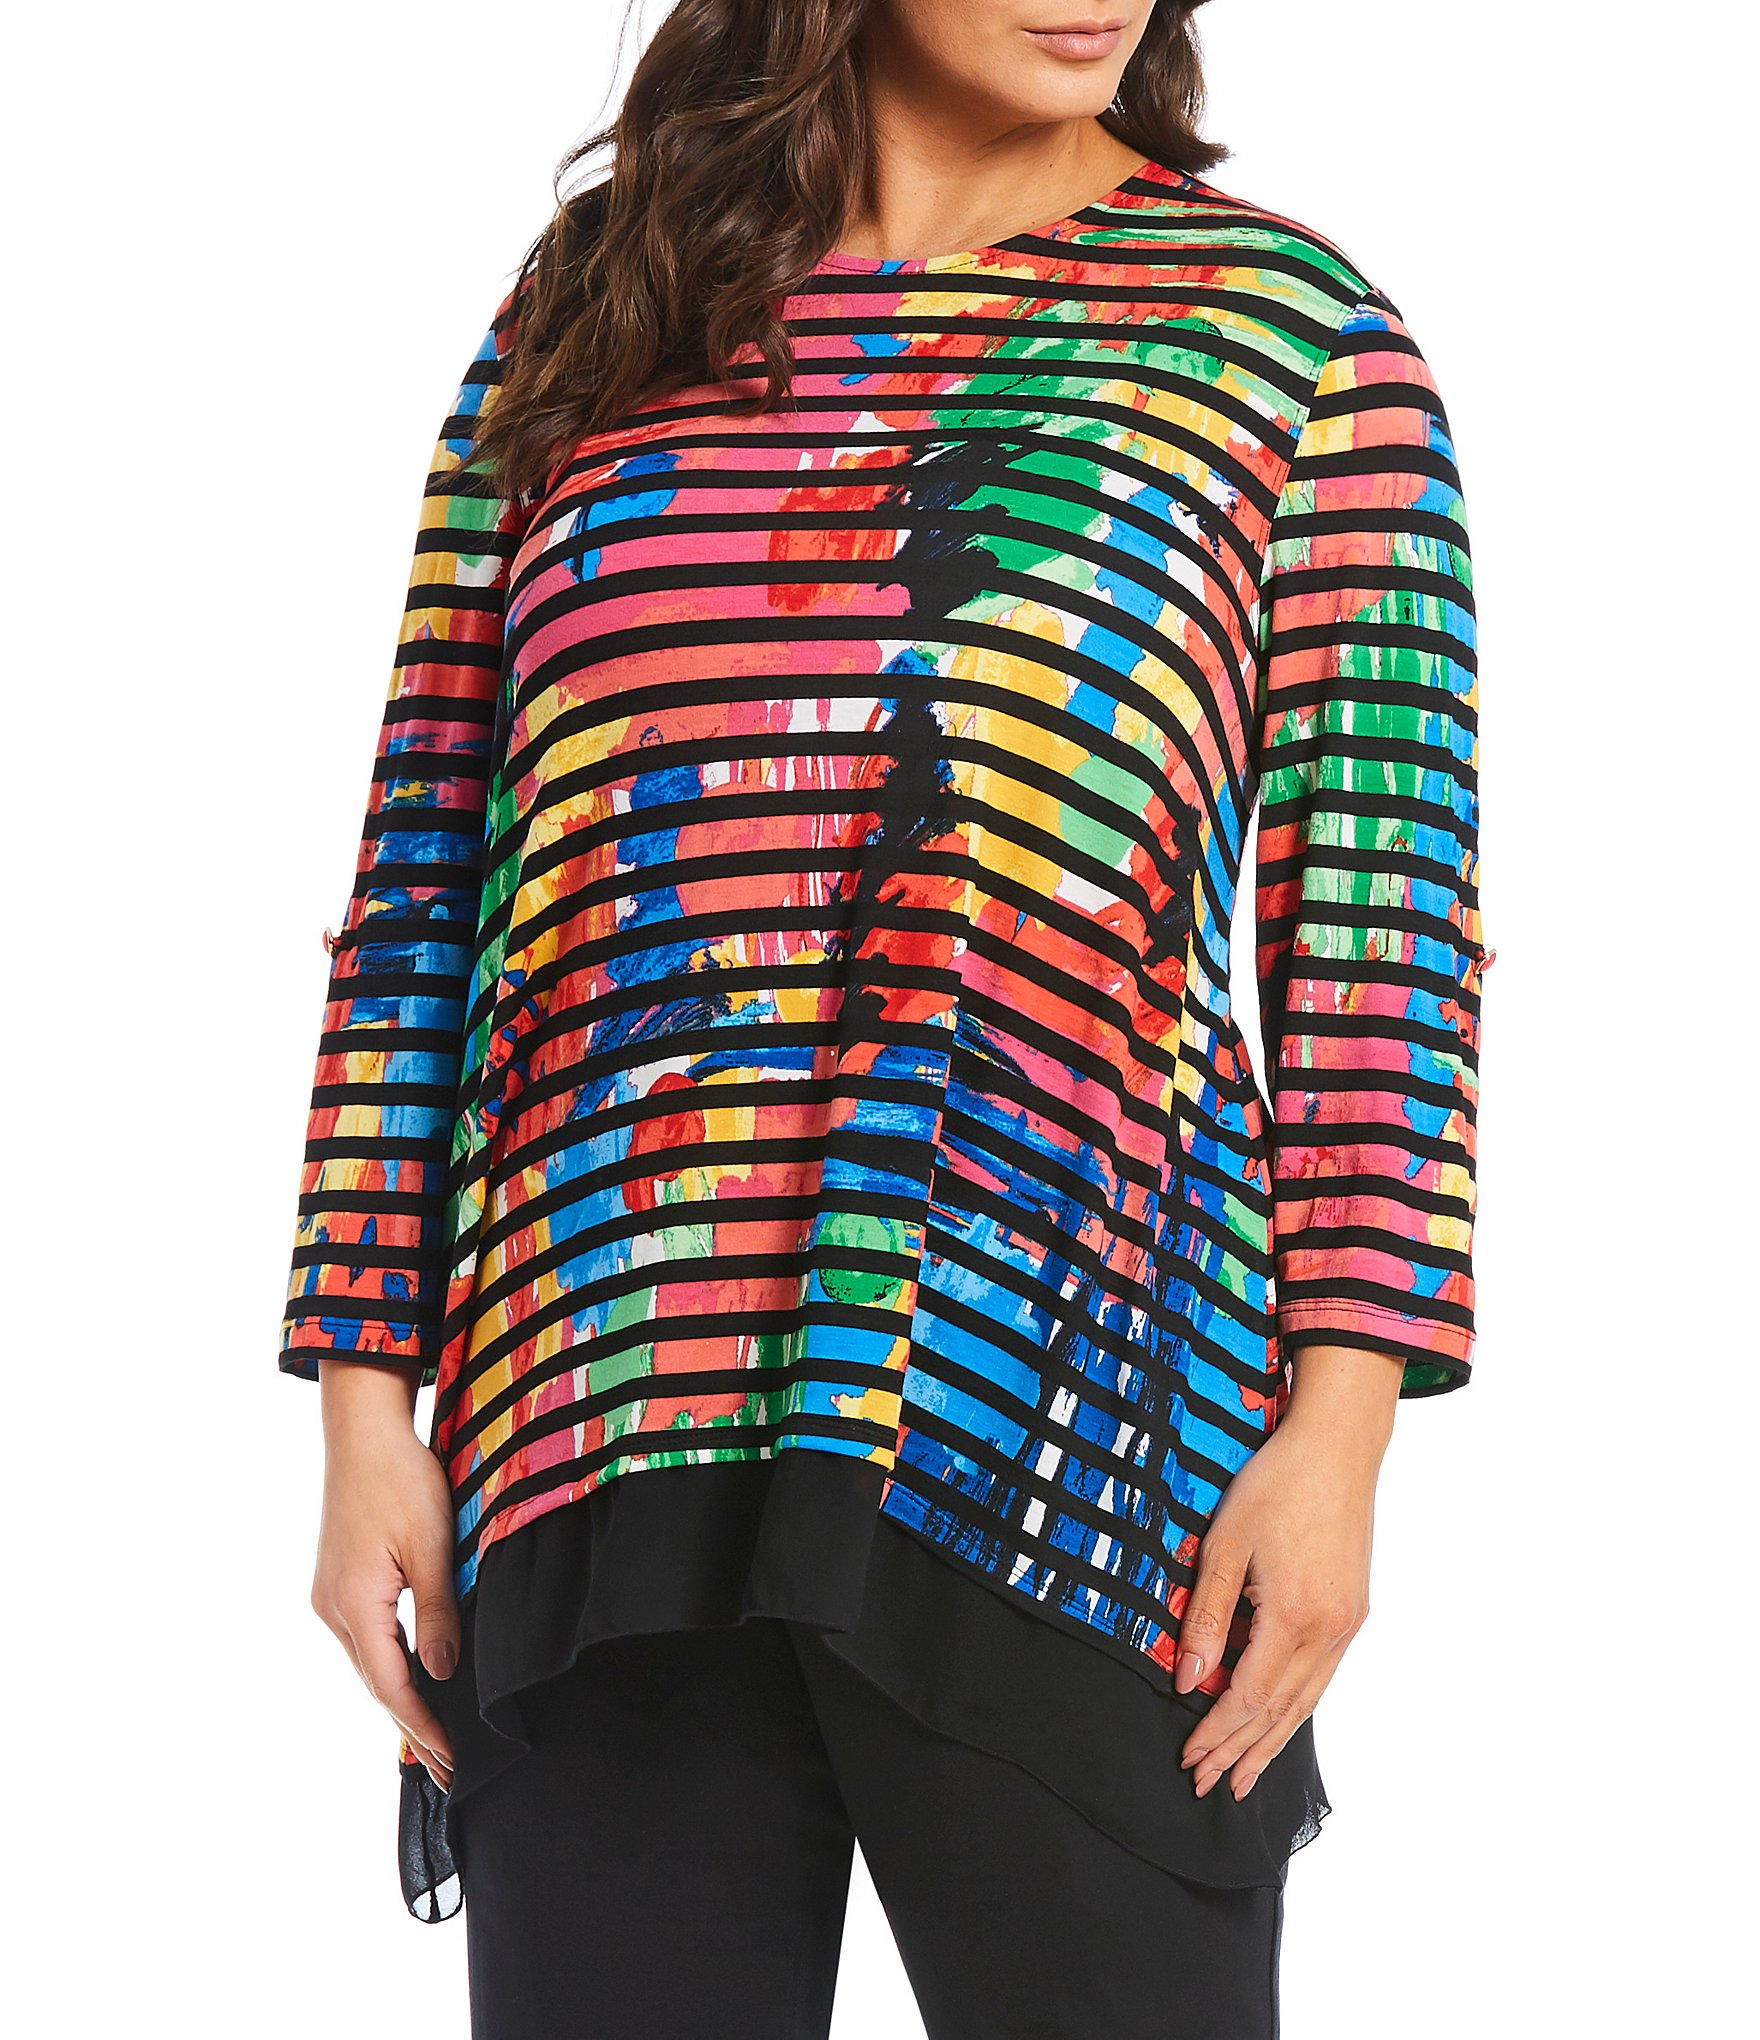 a8109791fdeeb6 Plus-Size Long-Sleeve Knit Tops